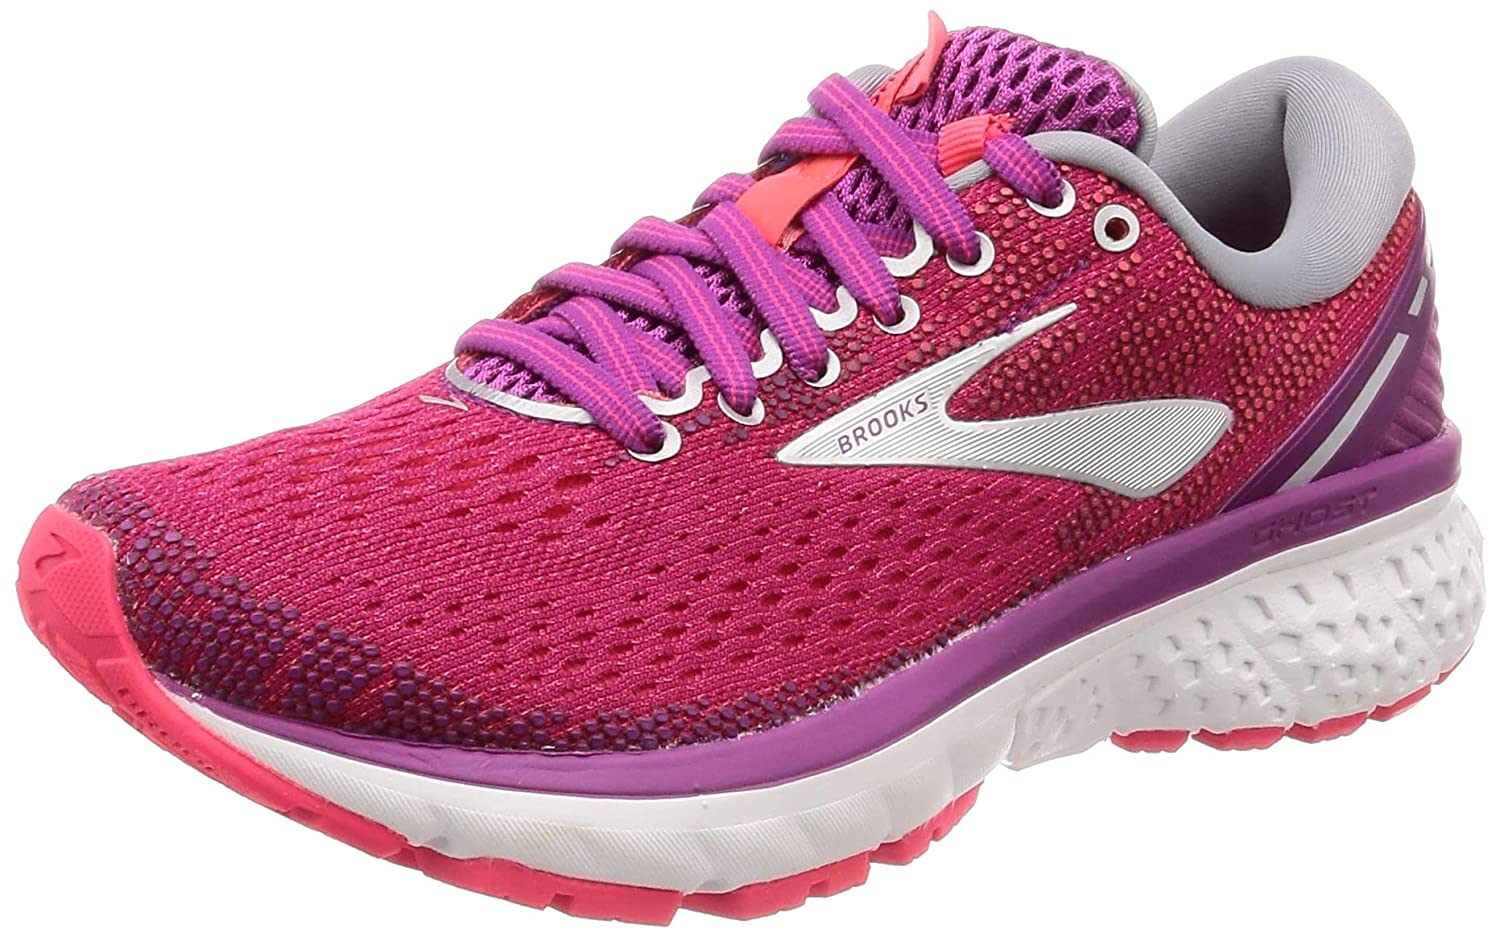 Aster Diva Pink Silver Brooks Women's Ghost 11 Running shoes